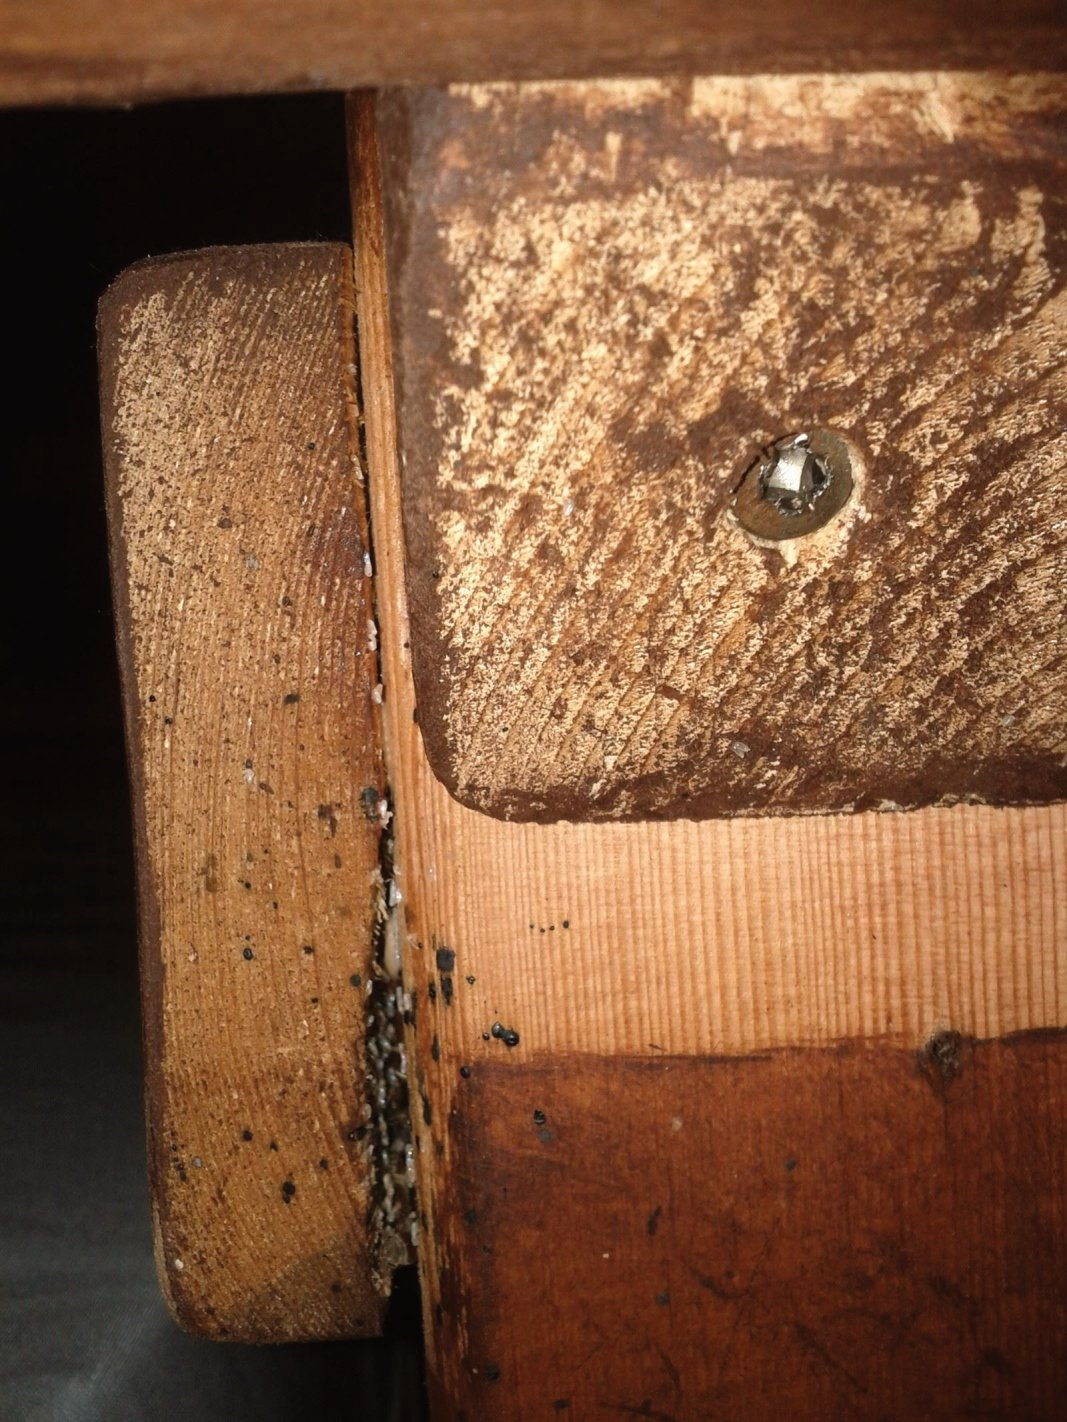 The white spots are Bed Bug eggs in the crevice between the pieces of wood on the bed frame. The dark spots are called Spotting which is Bed Bug excrement.